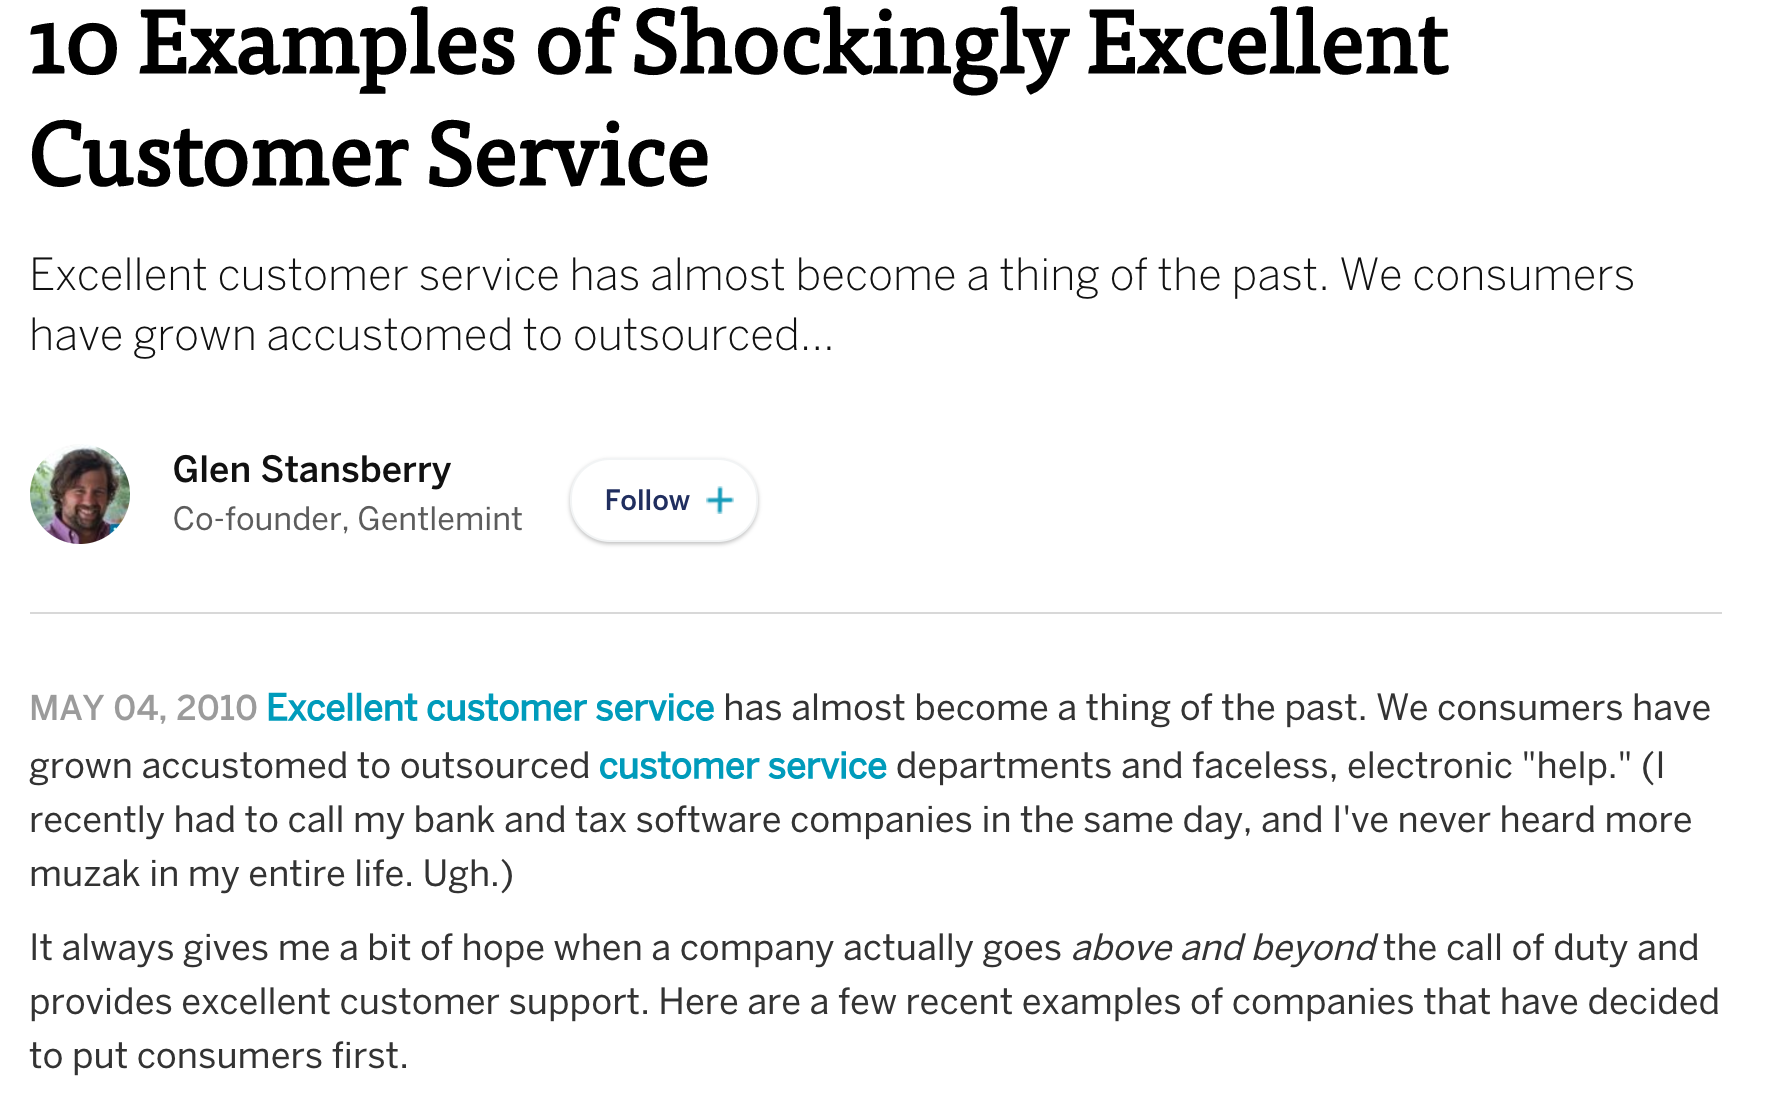 10 examples of shockingly excellent customer service